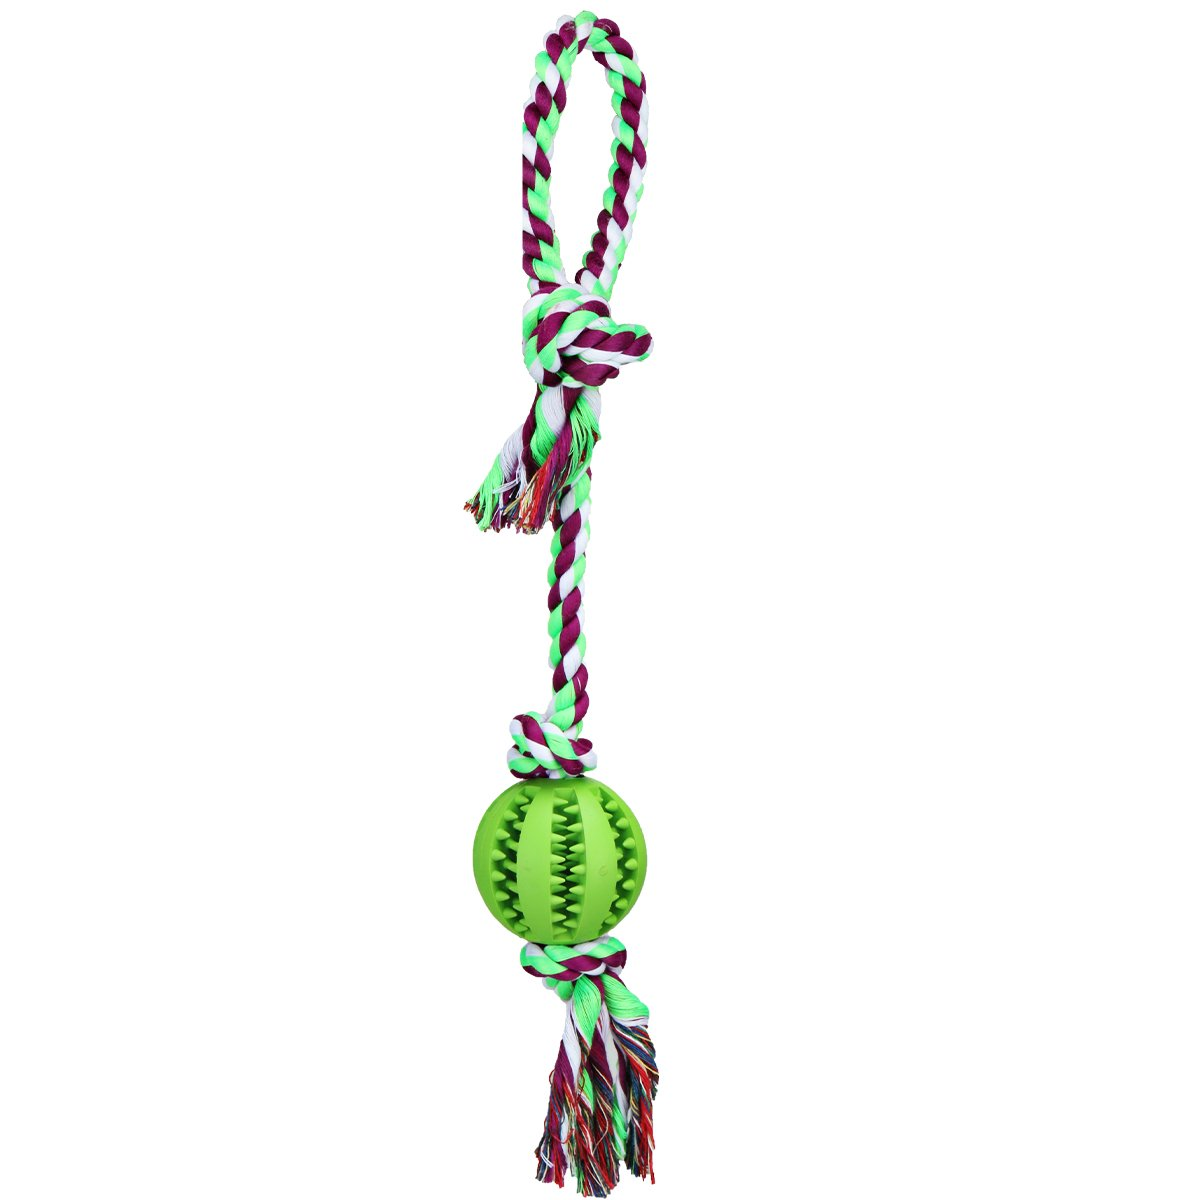 Green-9 TAILMATE Dog Chew Rope Toys with Natural Rubber Ball for Tug of War and Aggressive Chewers (Green9)